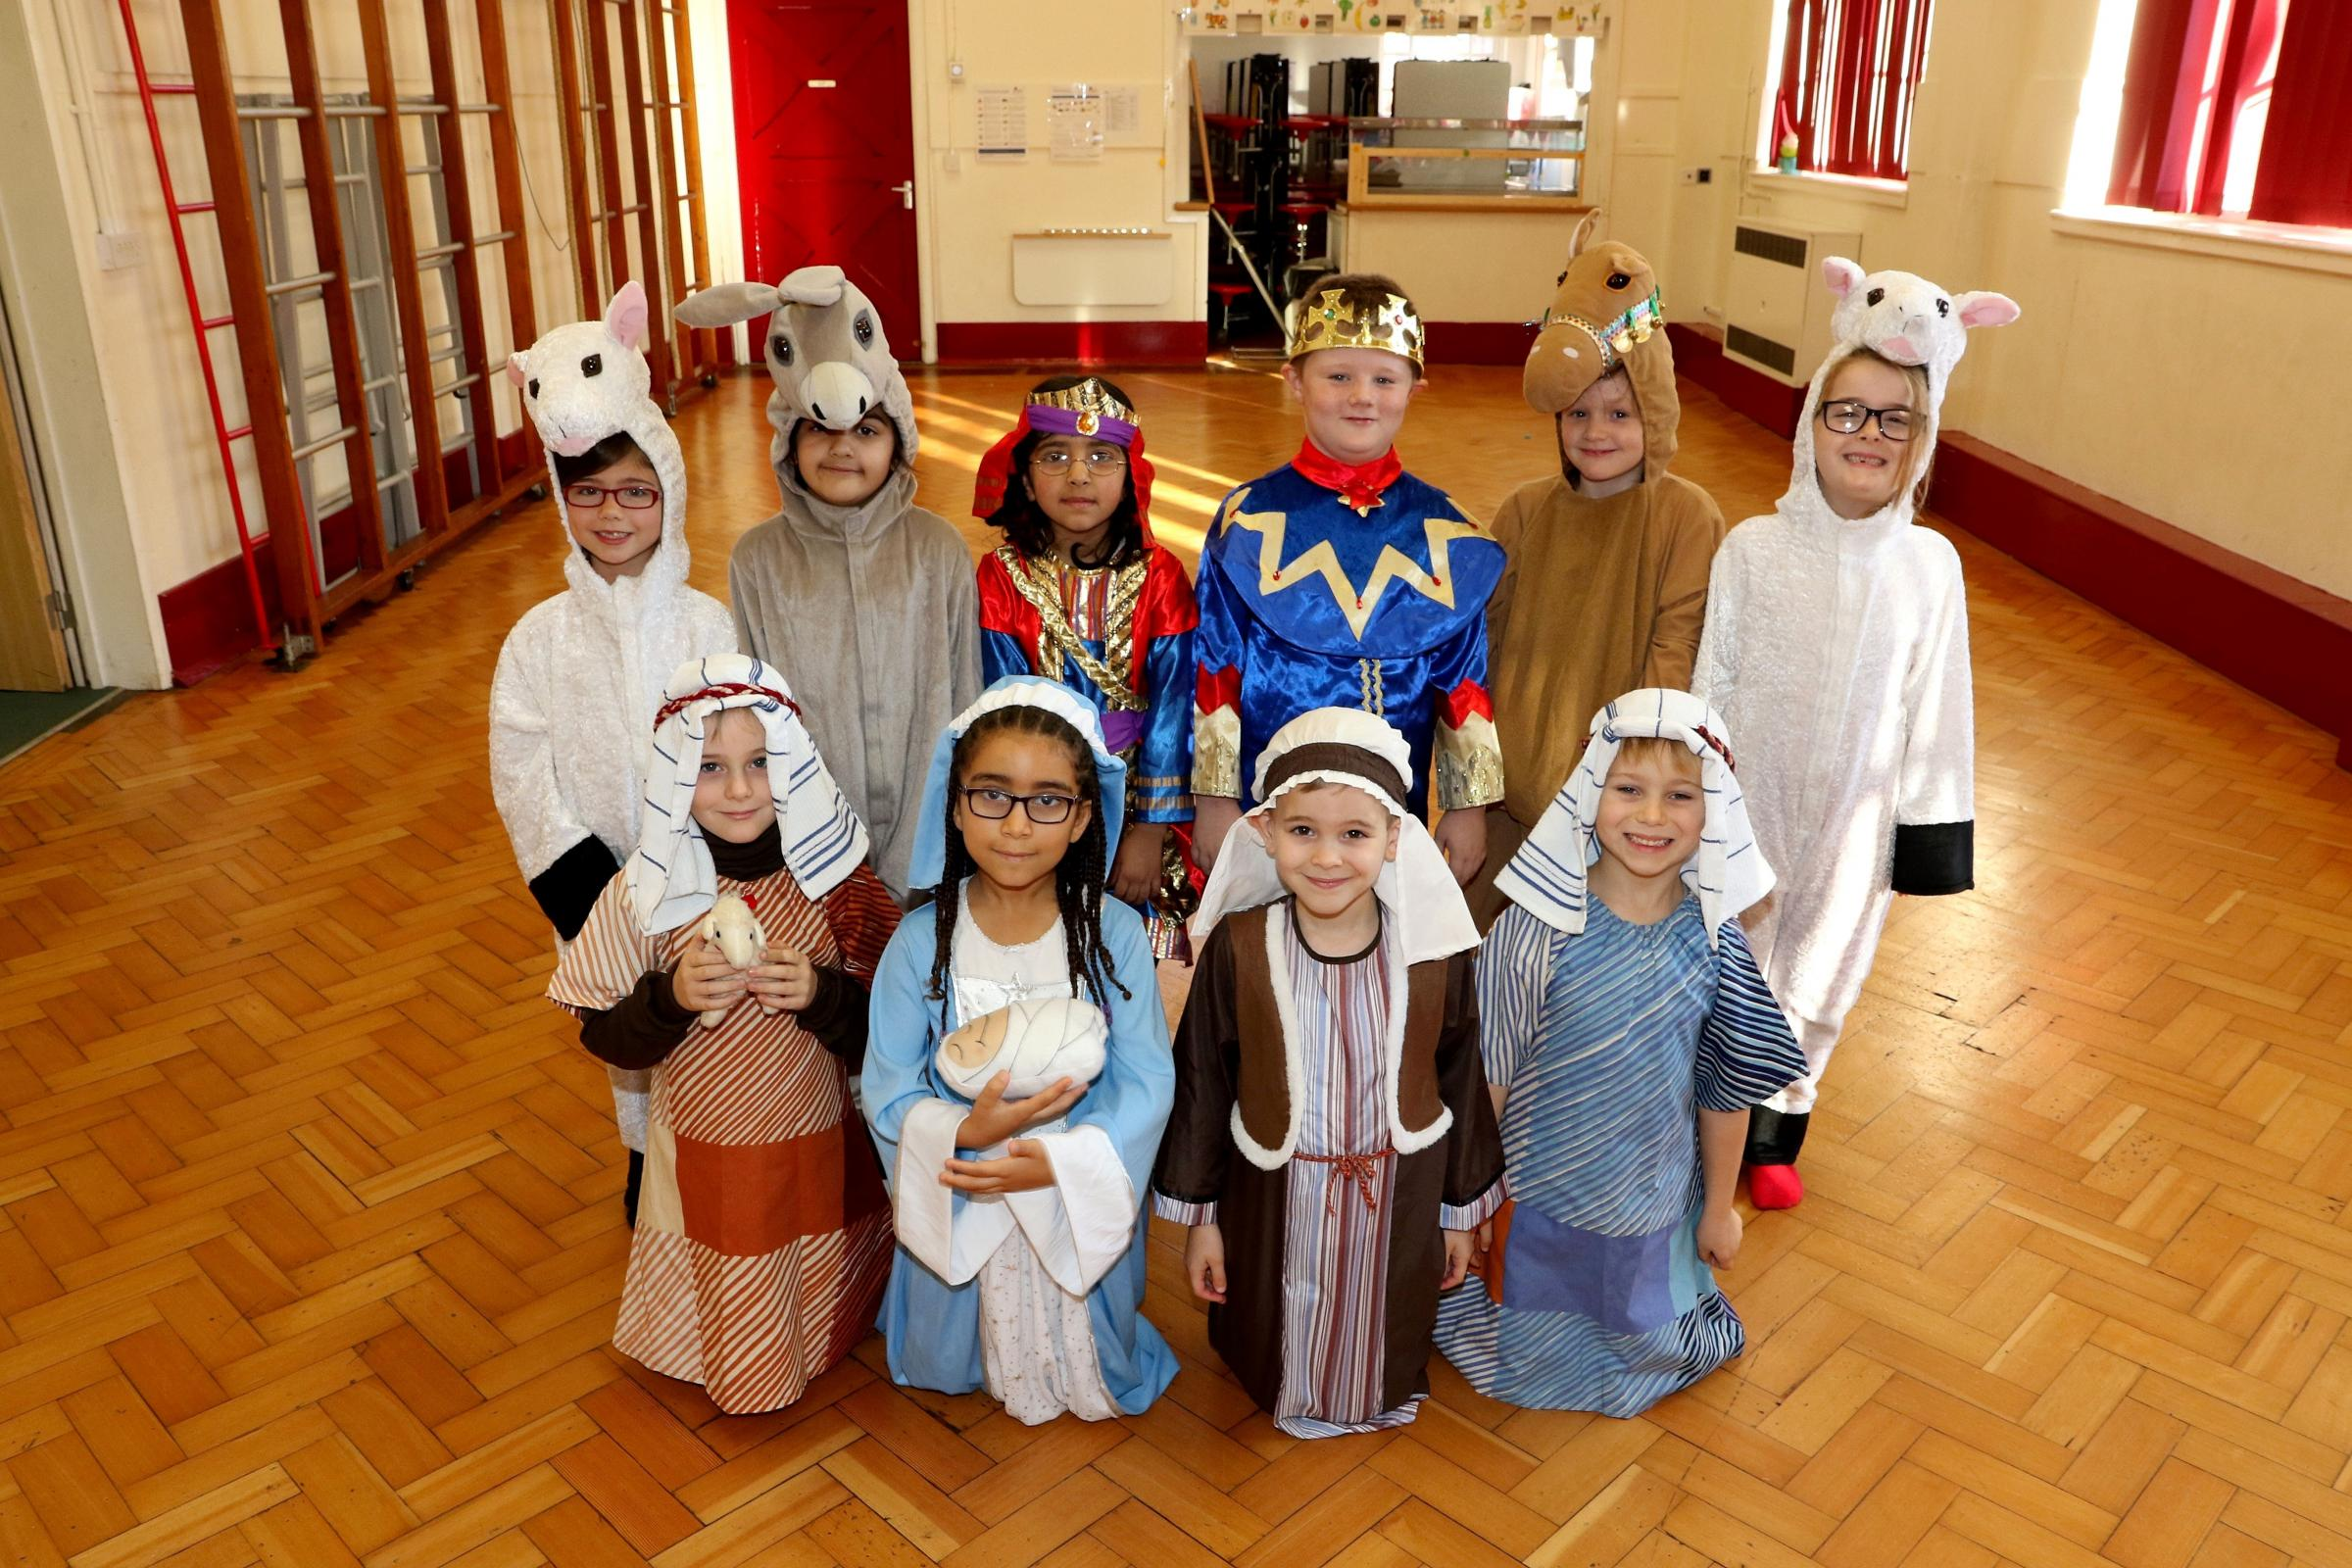 4615965901 Paul Jackson 12.11.15 Worcester - Nativity, St George's C of E Primary School, The Nativity..